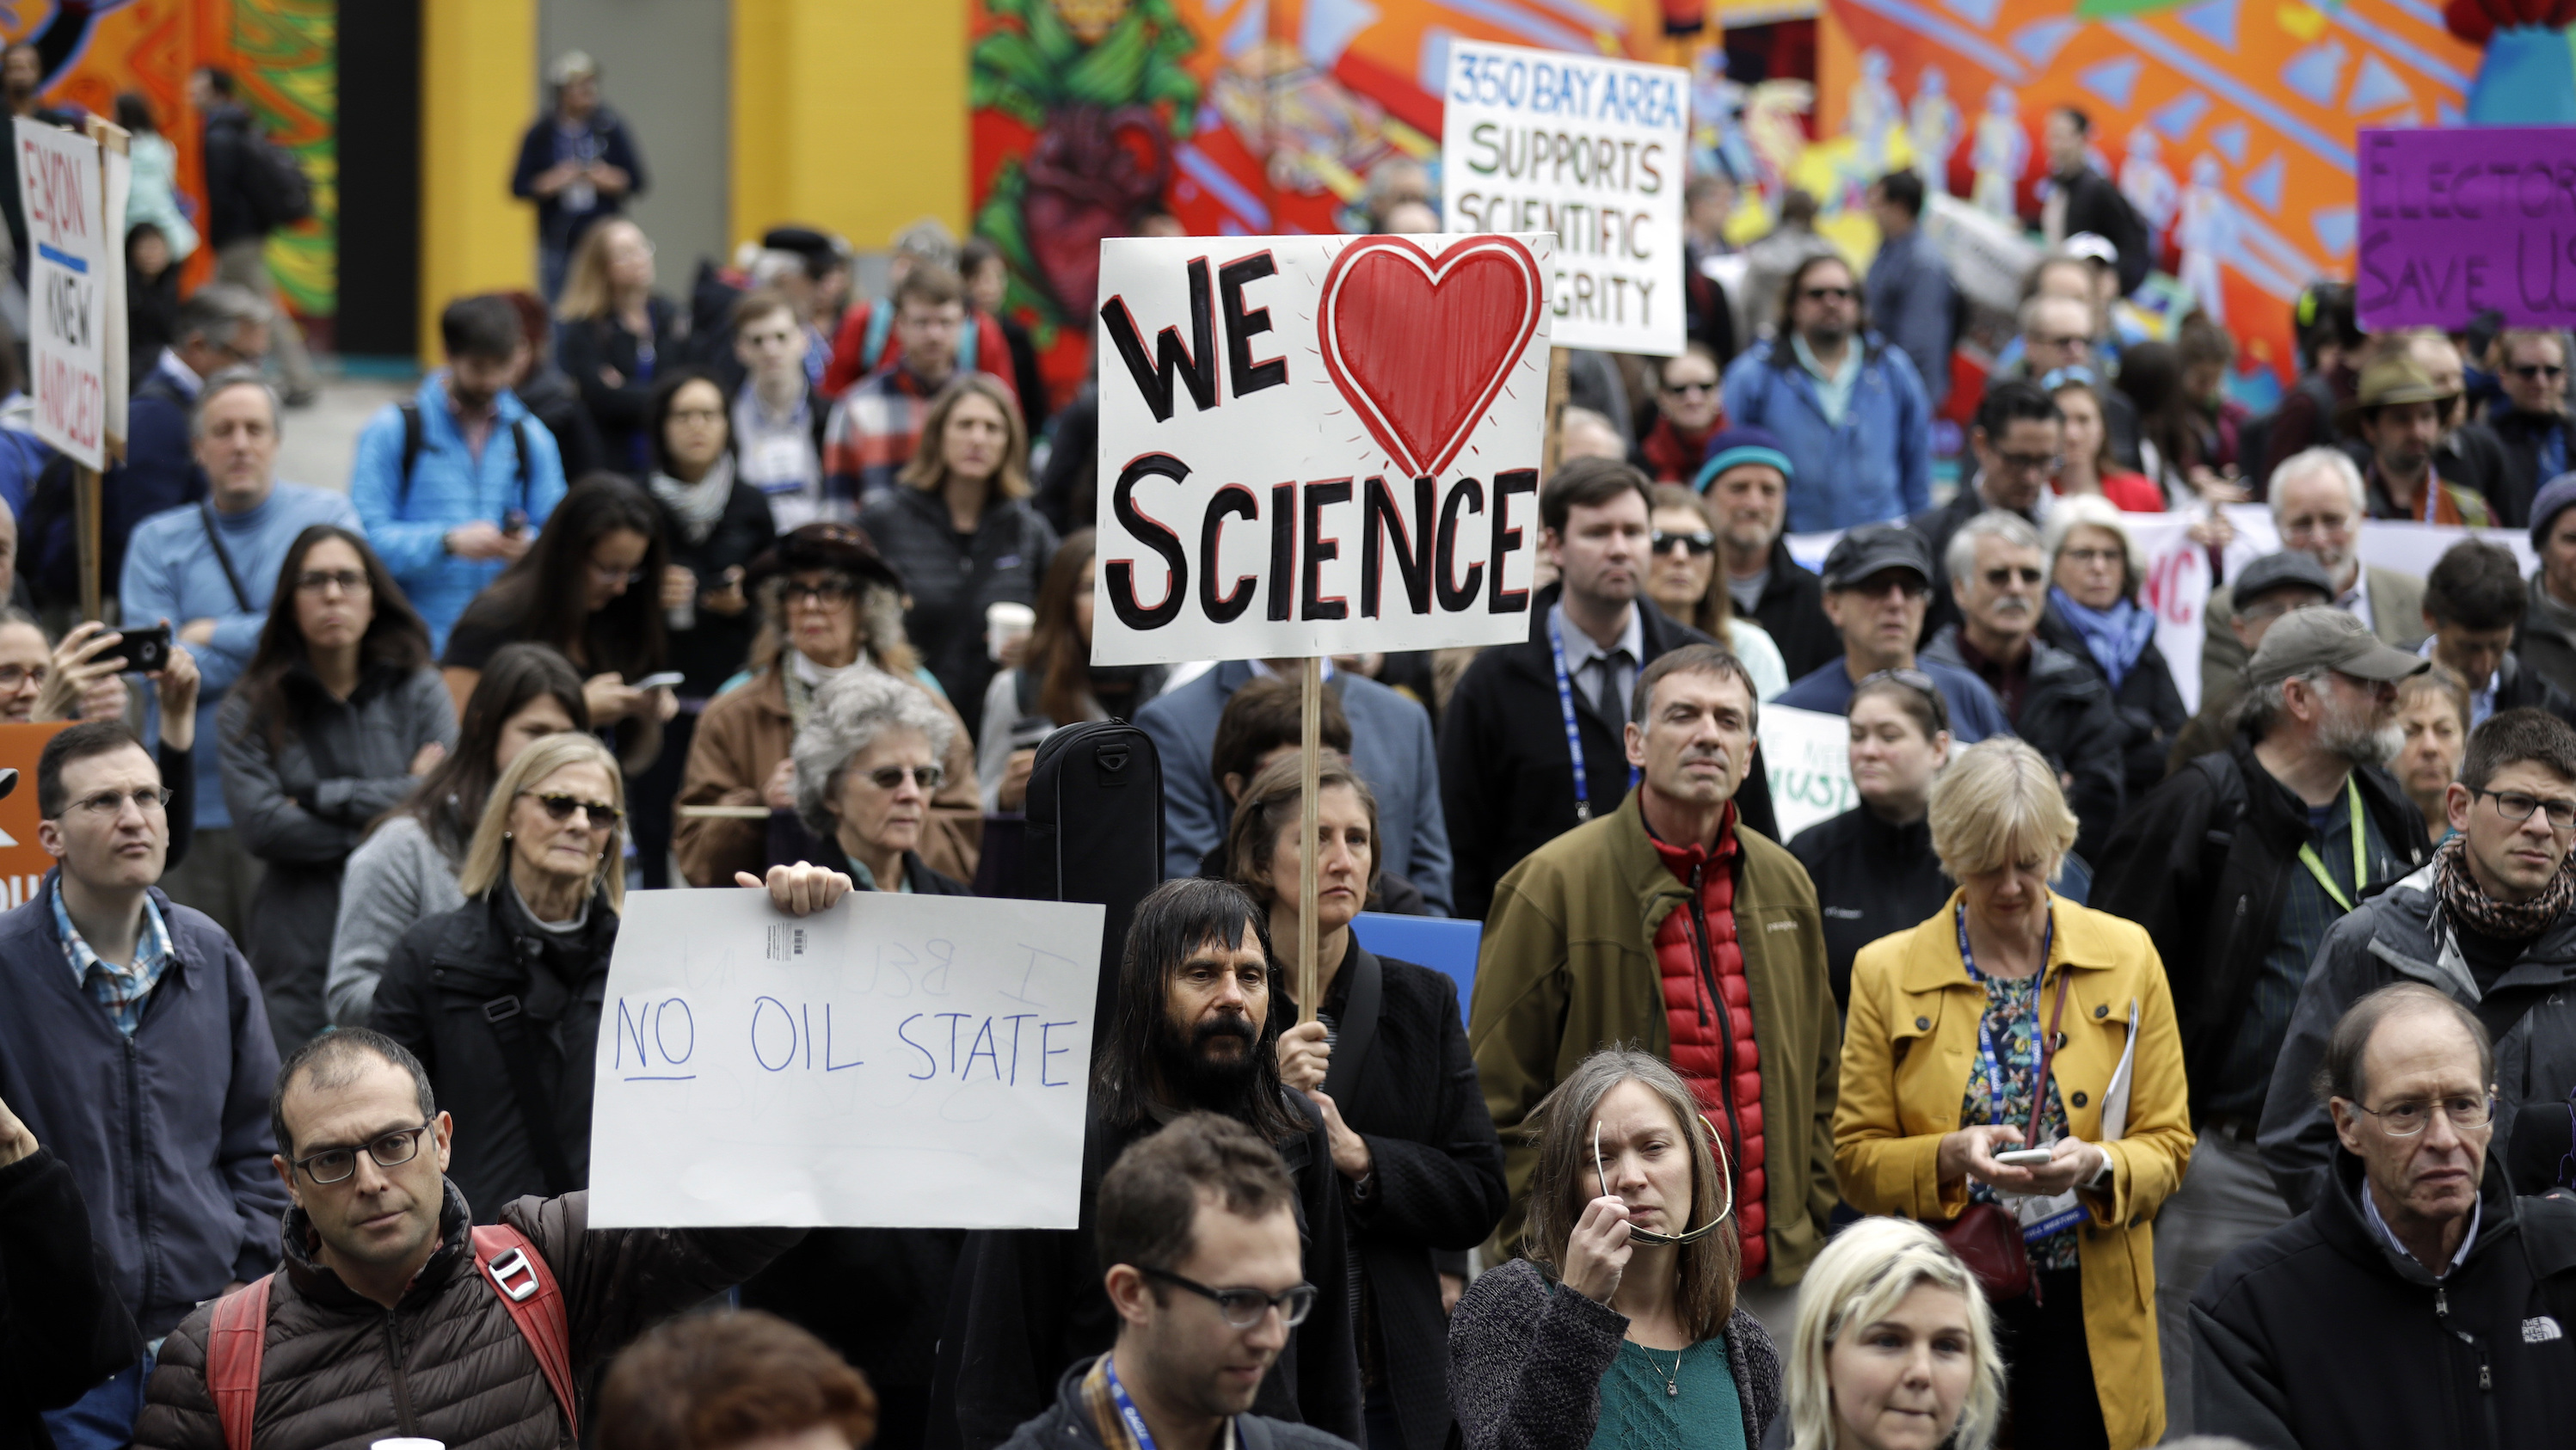 People hold signs as they listen to a group of scientists speak during a rally in conjunction with the American Geophysical Union's fall meeting Tuesday, Dec. 13, 2016, in San Francisco. The rally was to call attention to what scientist believe is unwarranted attacks by the incoming Trump administration against scientists advocating for the issue of climate change and its impact.